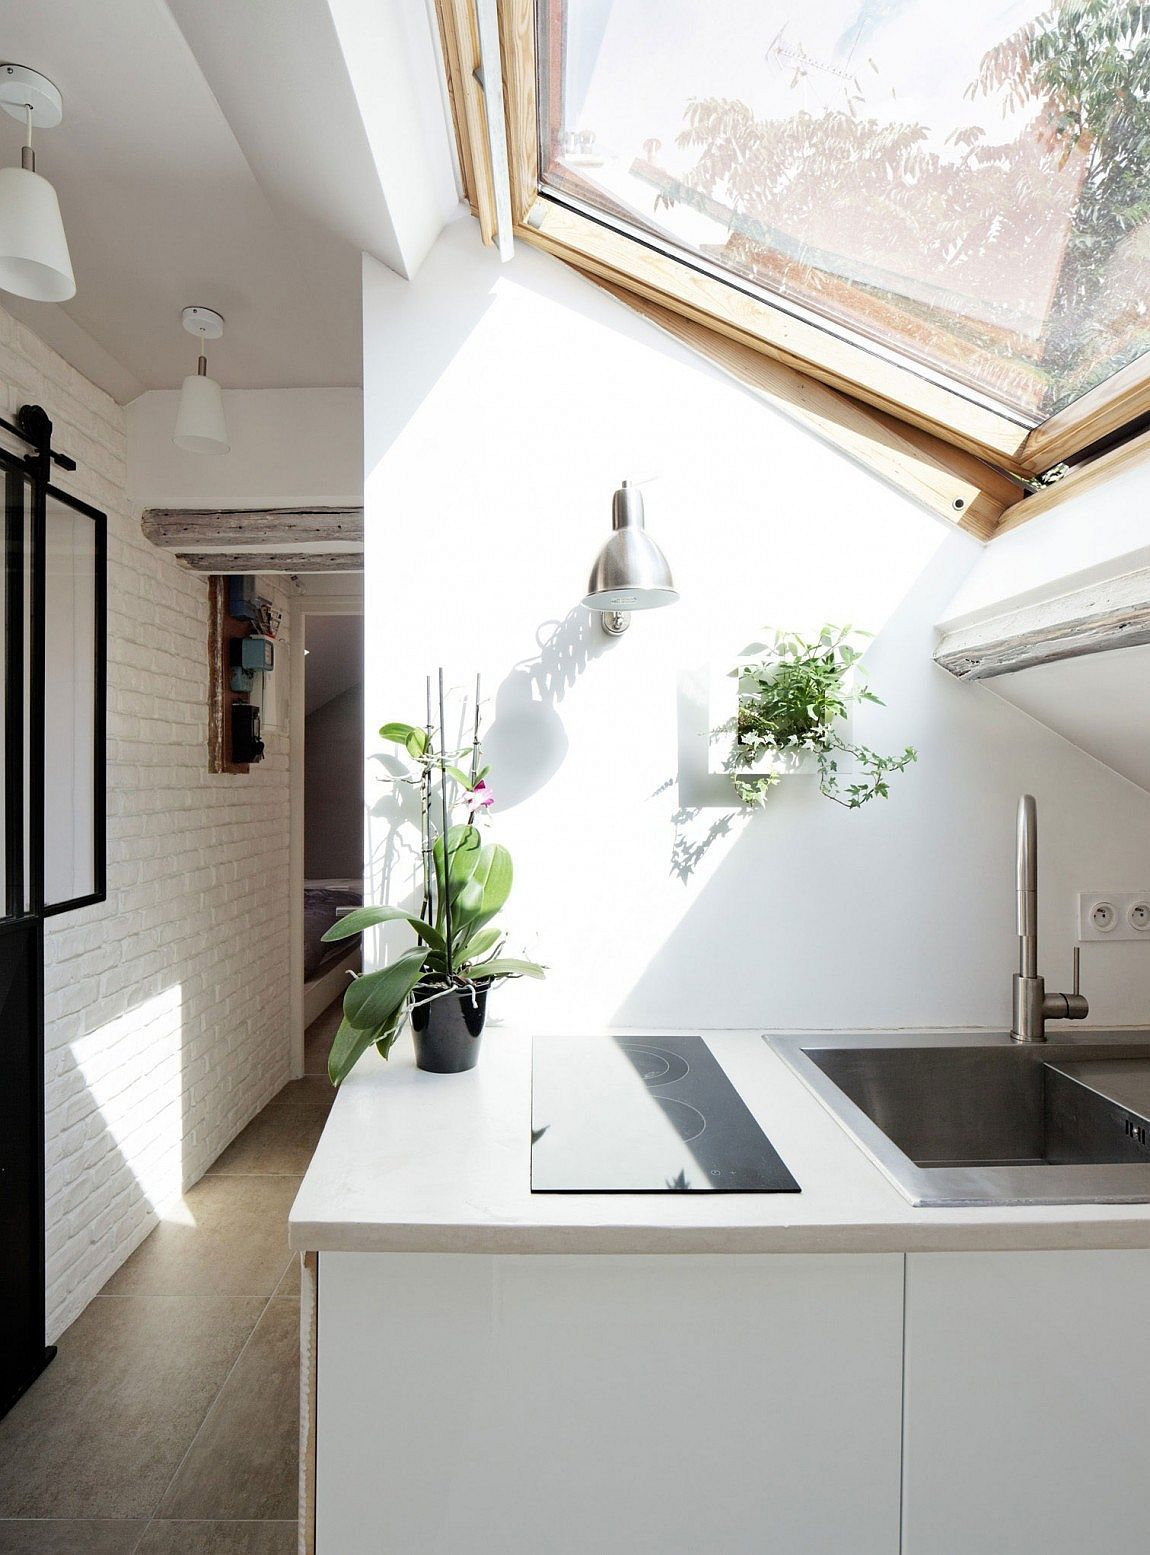 Skylight Brings Sunlight Into The Small Kitchen